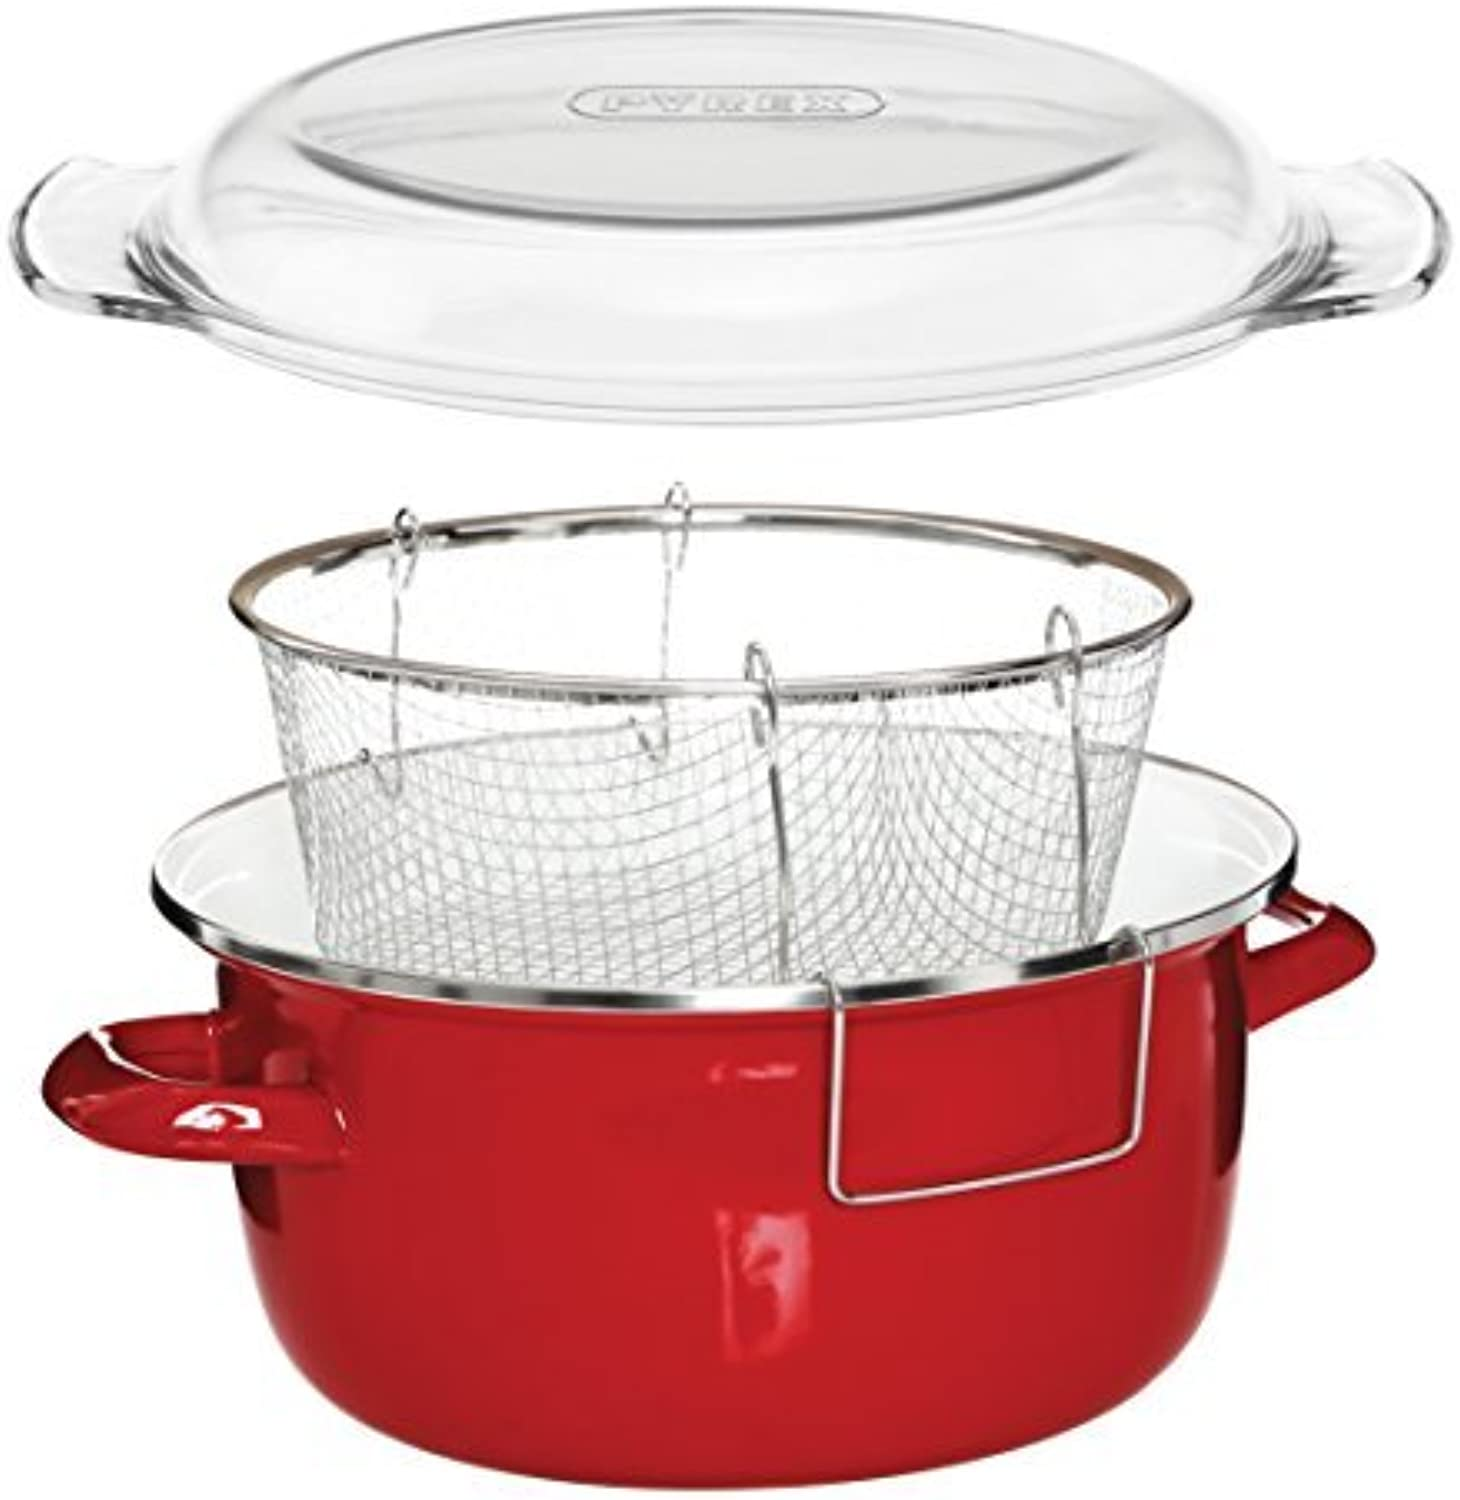 saludable Premier Houseware 5 L Deep Fryer with Pyrex Lid Lid Lid - 16 x 33 x 27 cm, rojo by Premier Housewares  perfecto